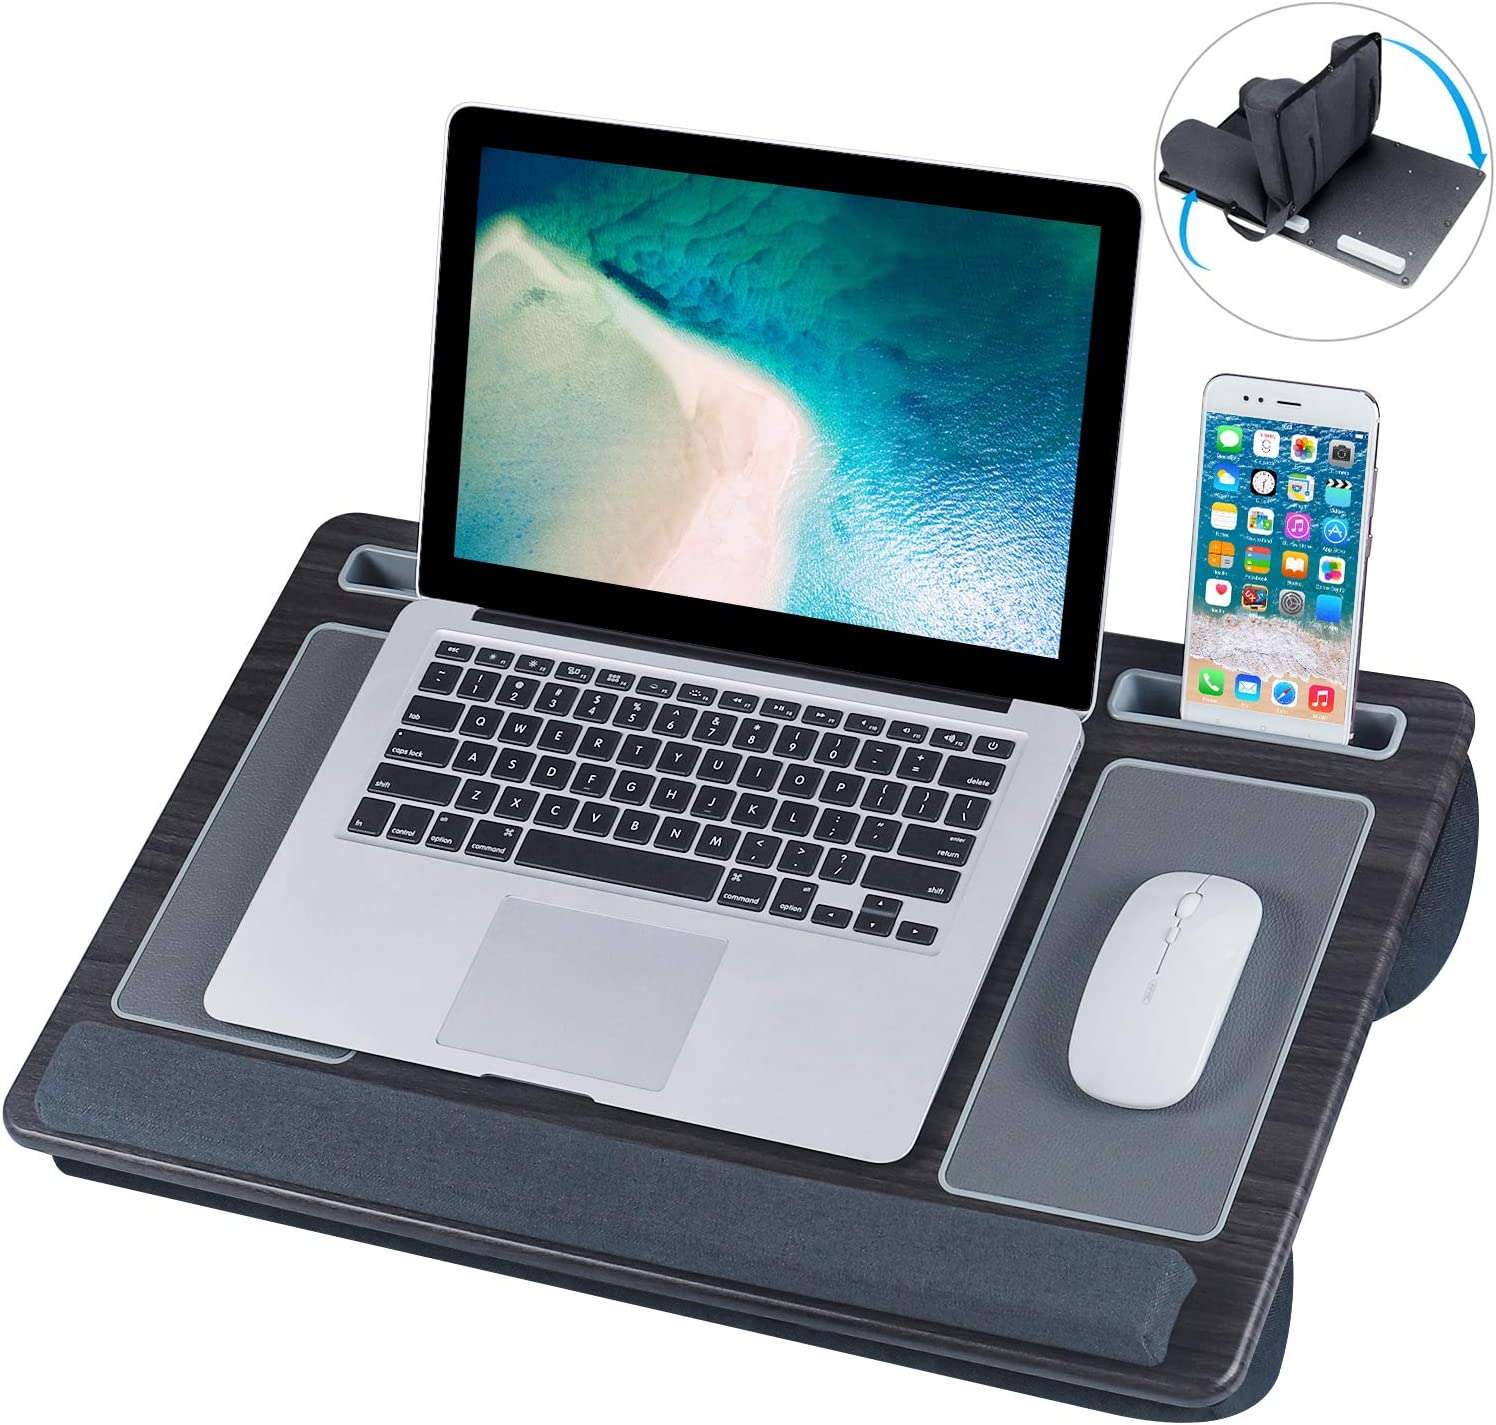 Lap Desk, NEARPOW Laptop Lap Desks for Adults with Removable Pillow Cushion Cover, Right Left Mouse Pad and Wrist Pad, Fits up to 17 inch,Laptop Stand with Tablet Phone Holder for Bed Sofa Couch Floor